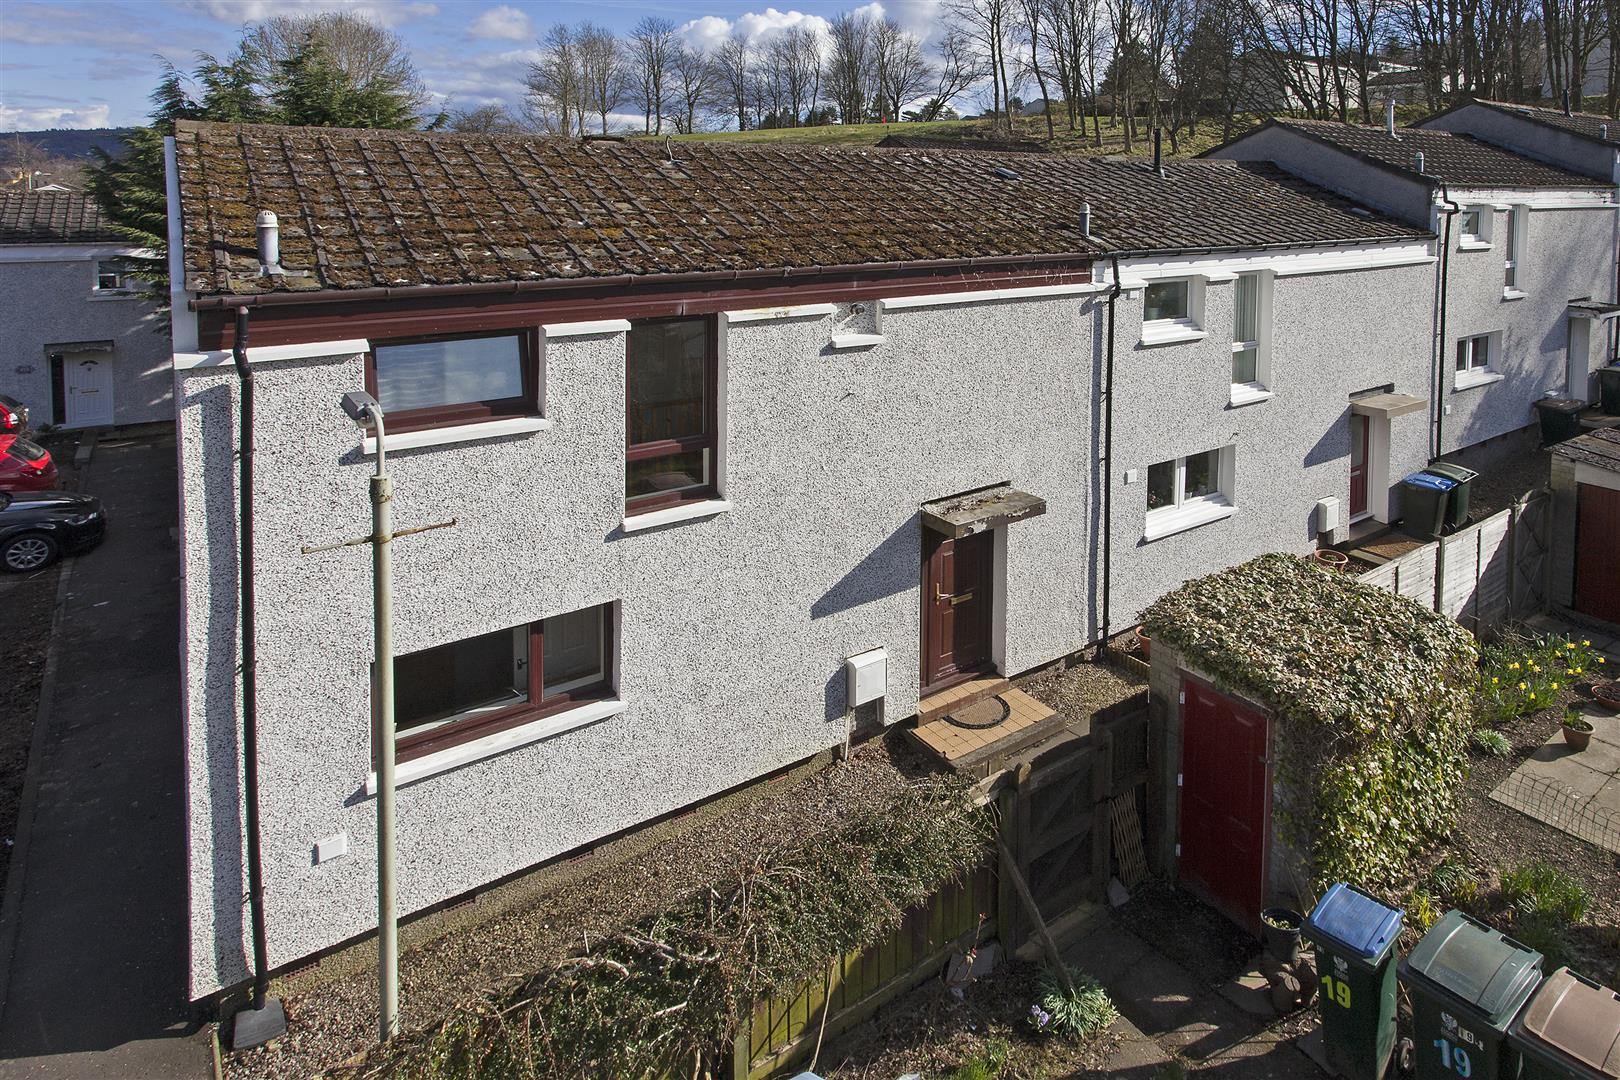 18, Wallace Crescent, Perth, Perthshire, PH1 2RF, UK